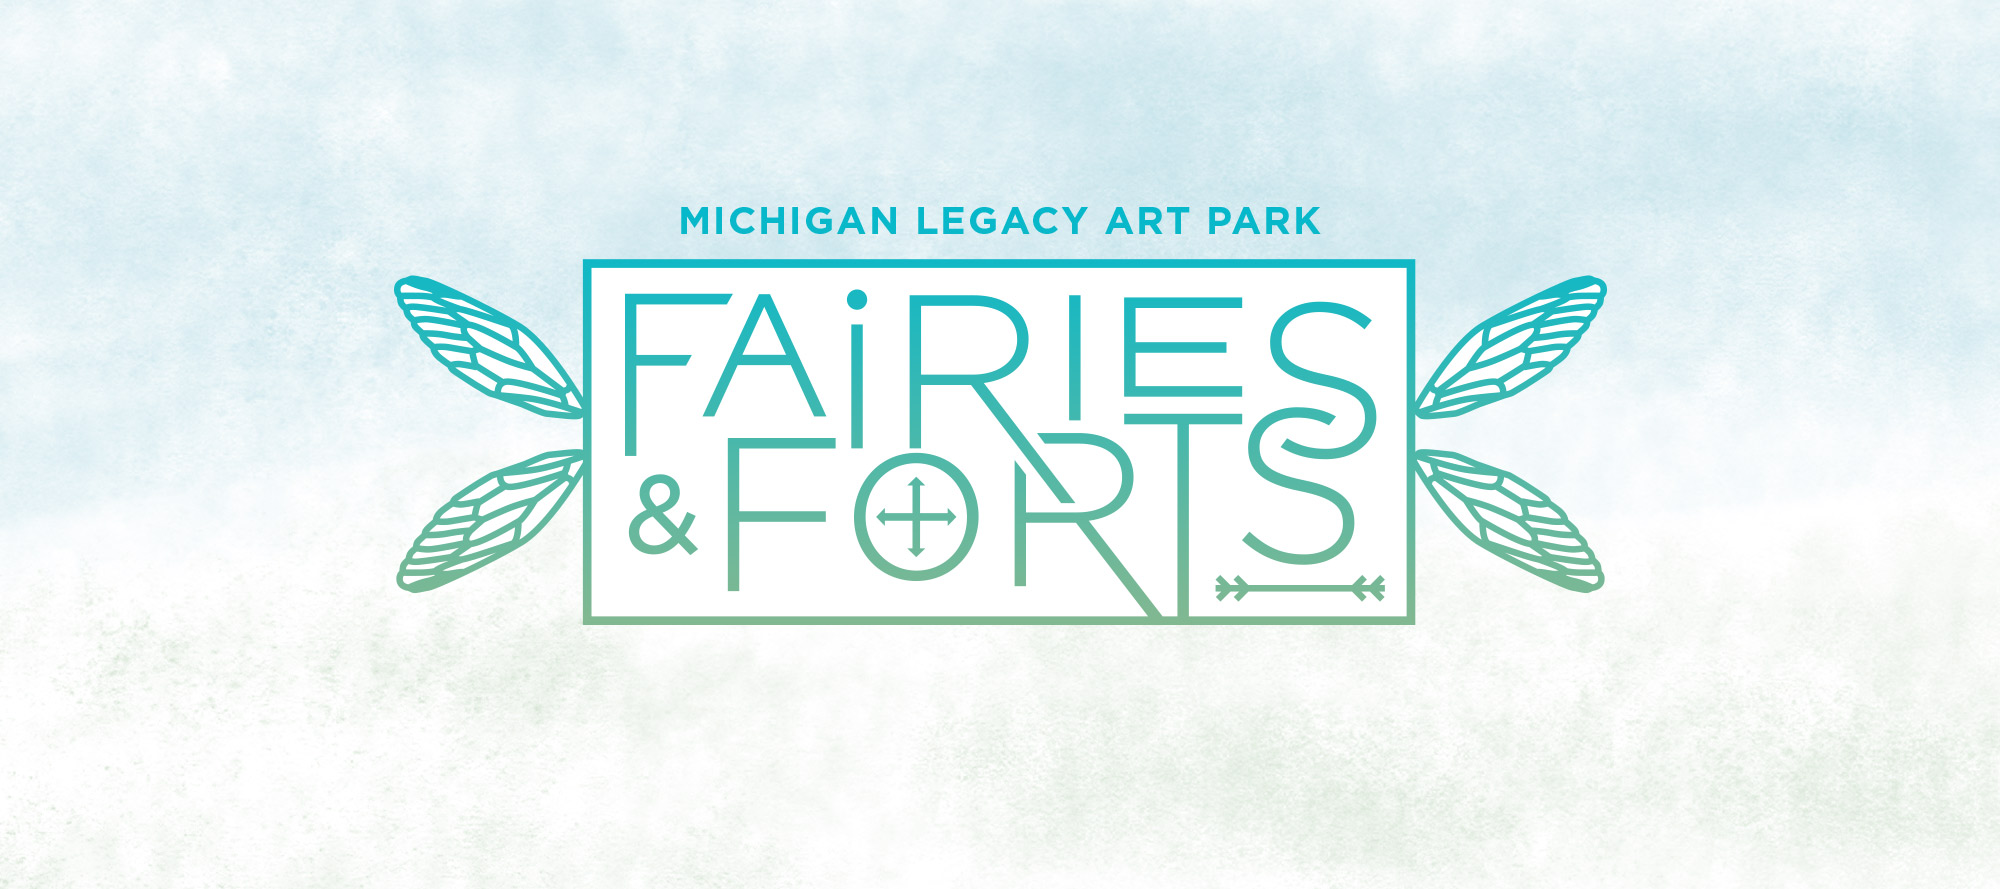 Fairies and Forts summer celebration at Michigan Legacy Art Park